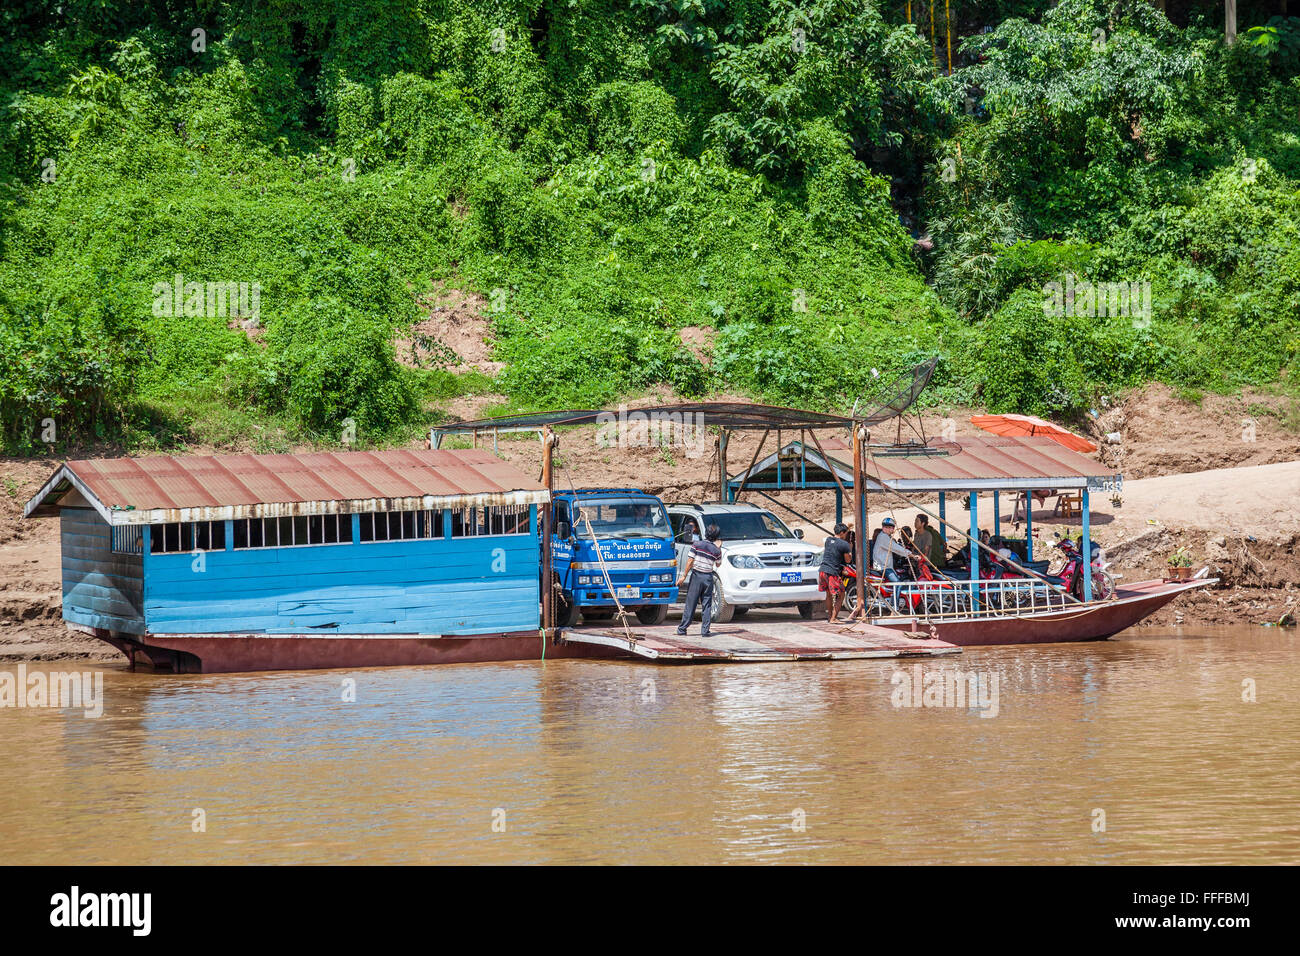 Lao People's Democratic Republic, Luang Prabang Province, river ferries on the banks of Mekong River at Ban - Stock Image